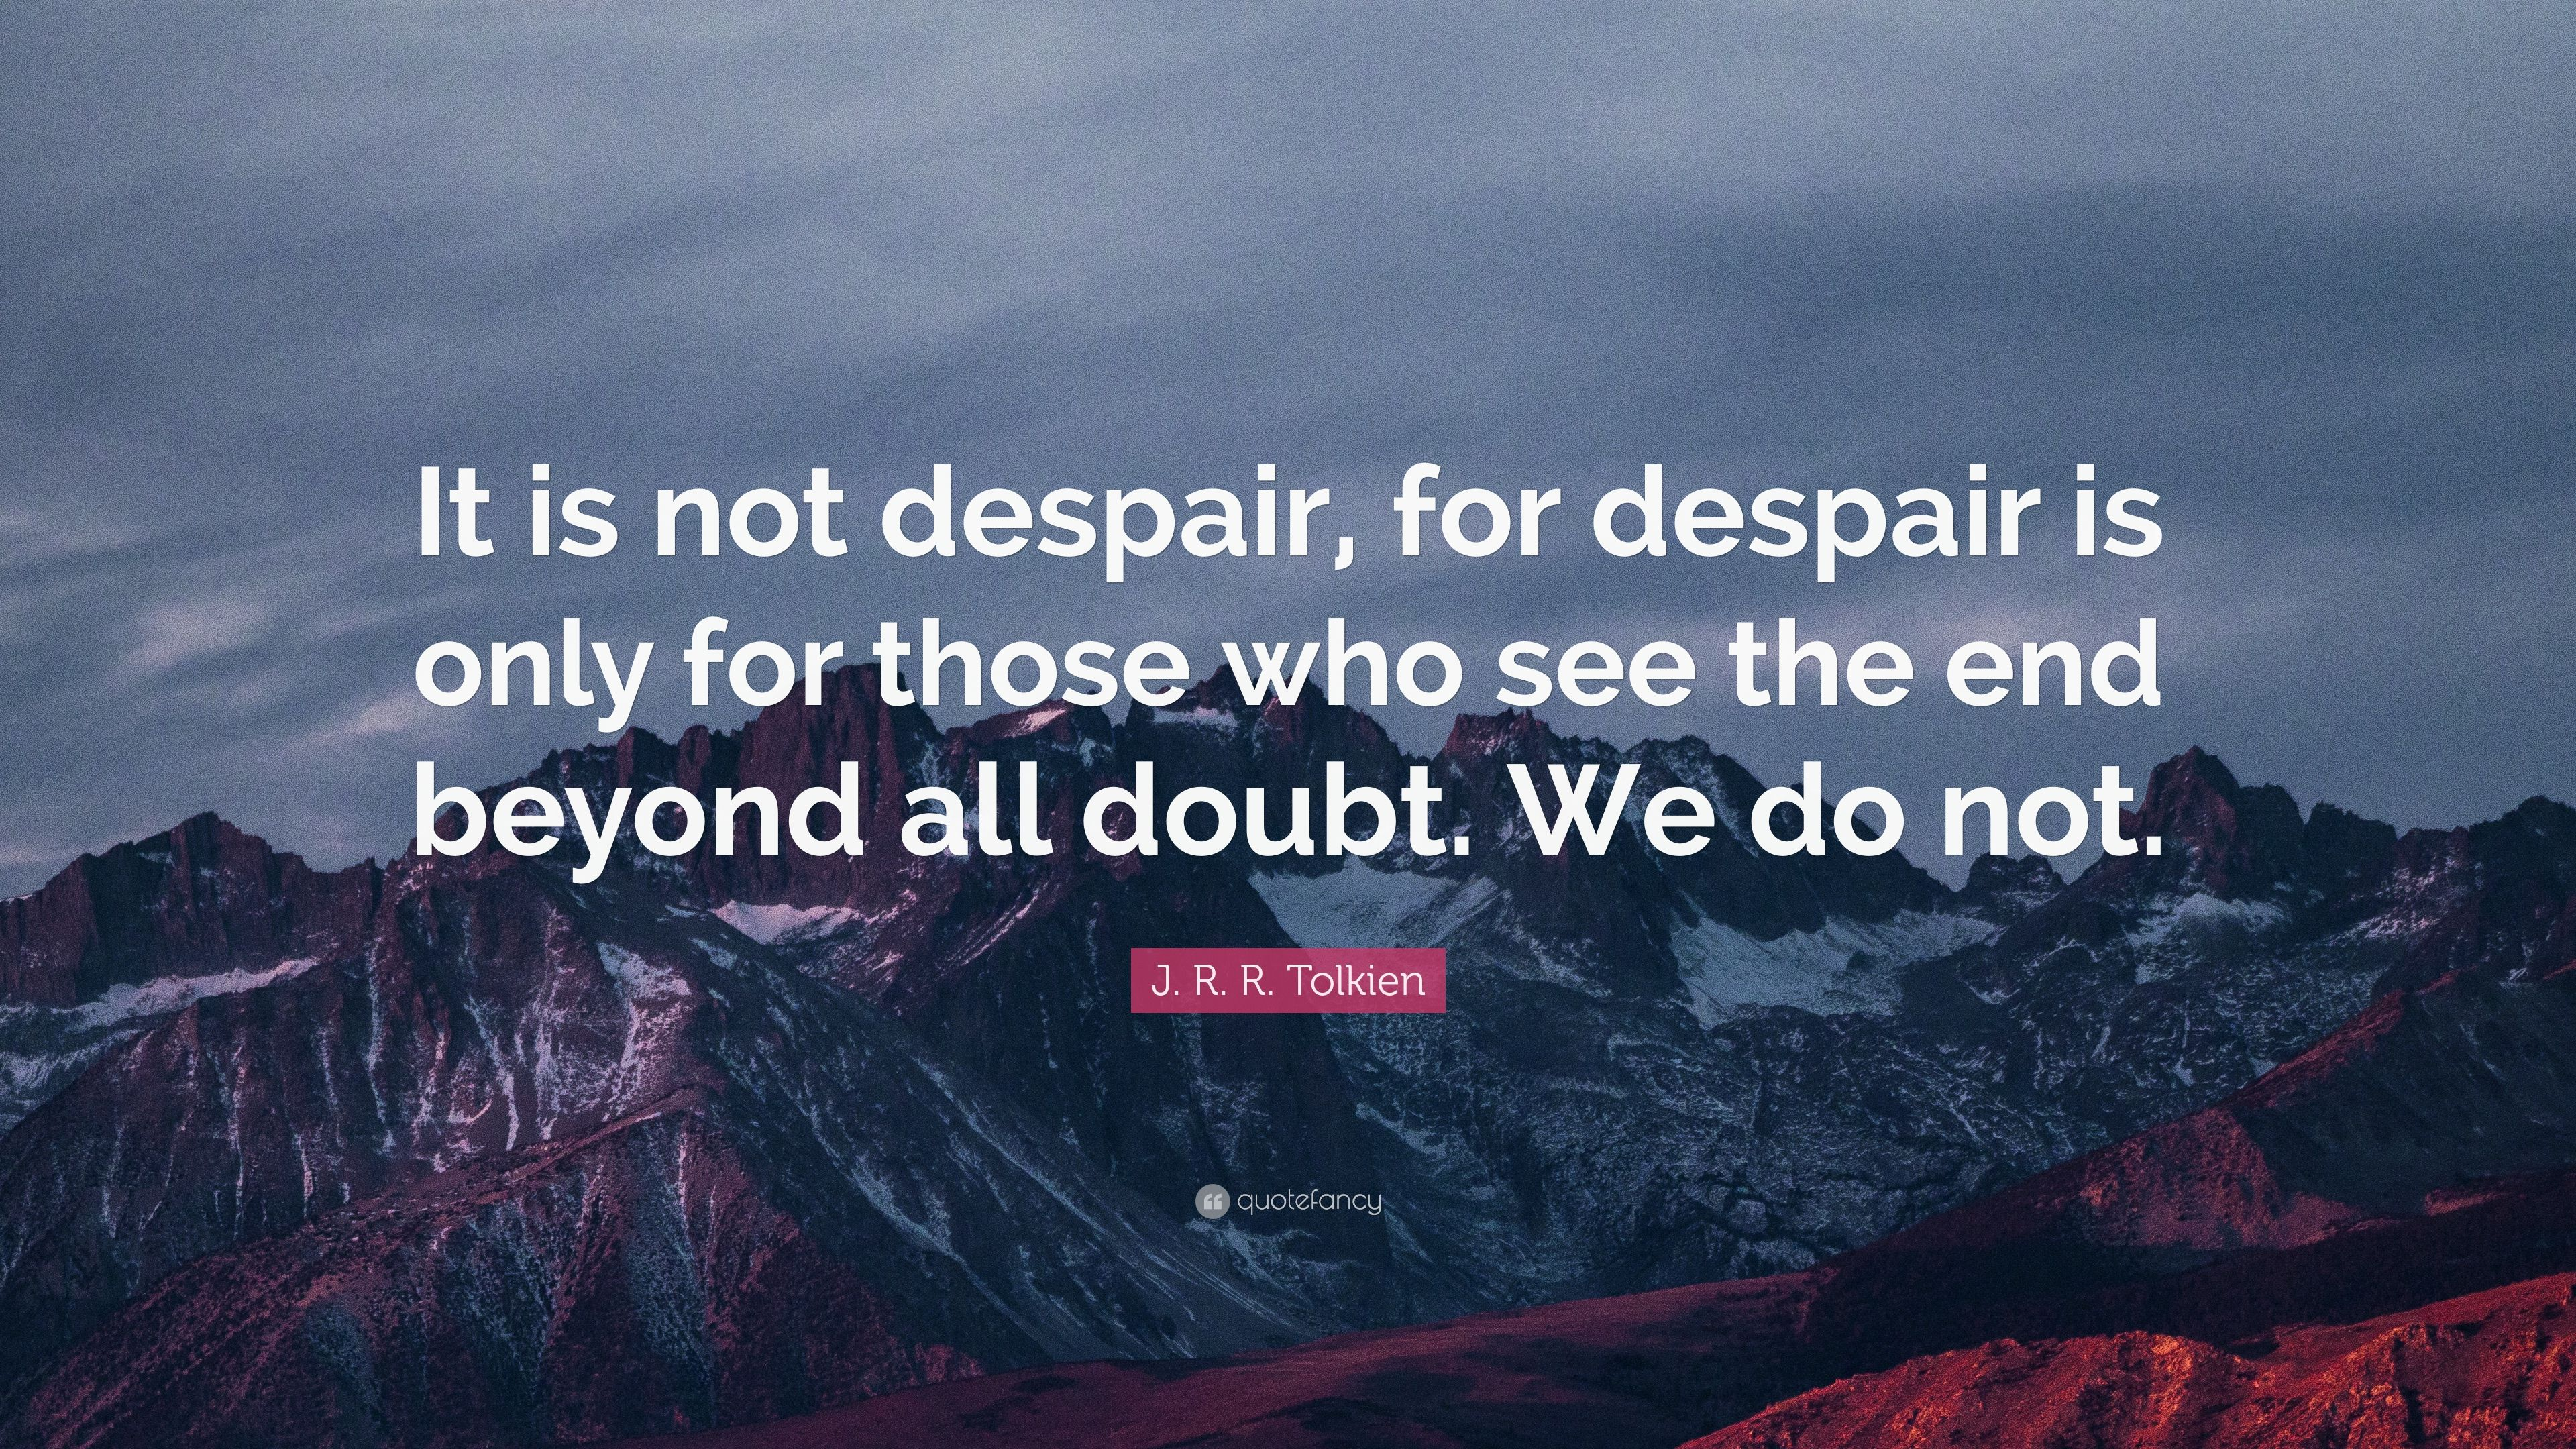 "J. R. R. Tolkien Quote: ""It is not despair, for despair is only for those  who see the end beyond all doubt. We do not."" (12 wallpapers) - Quotefancy"